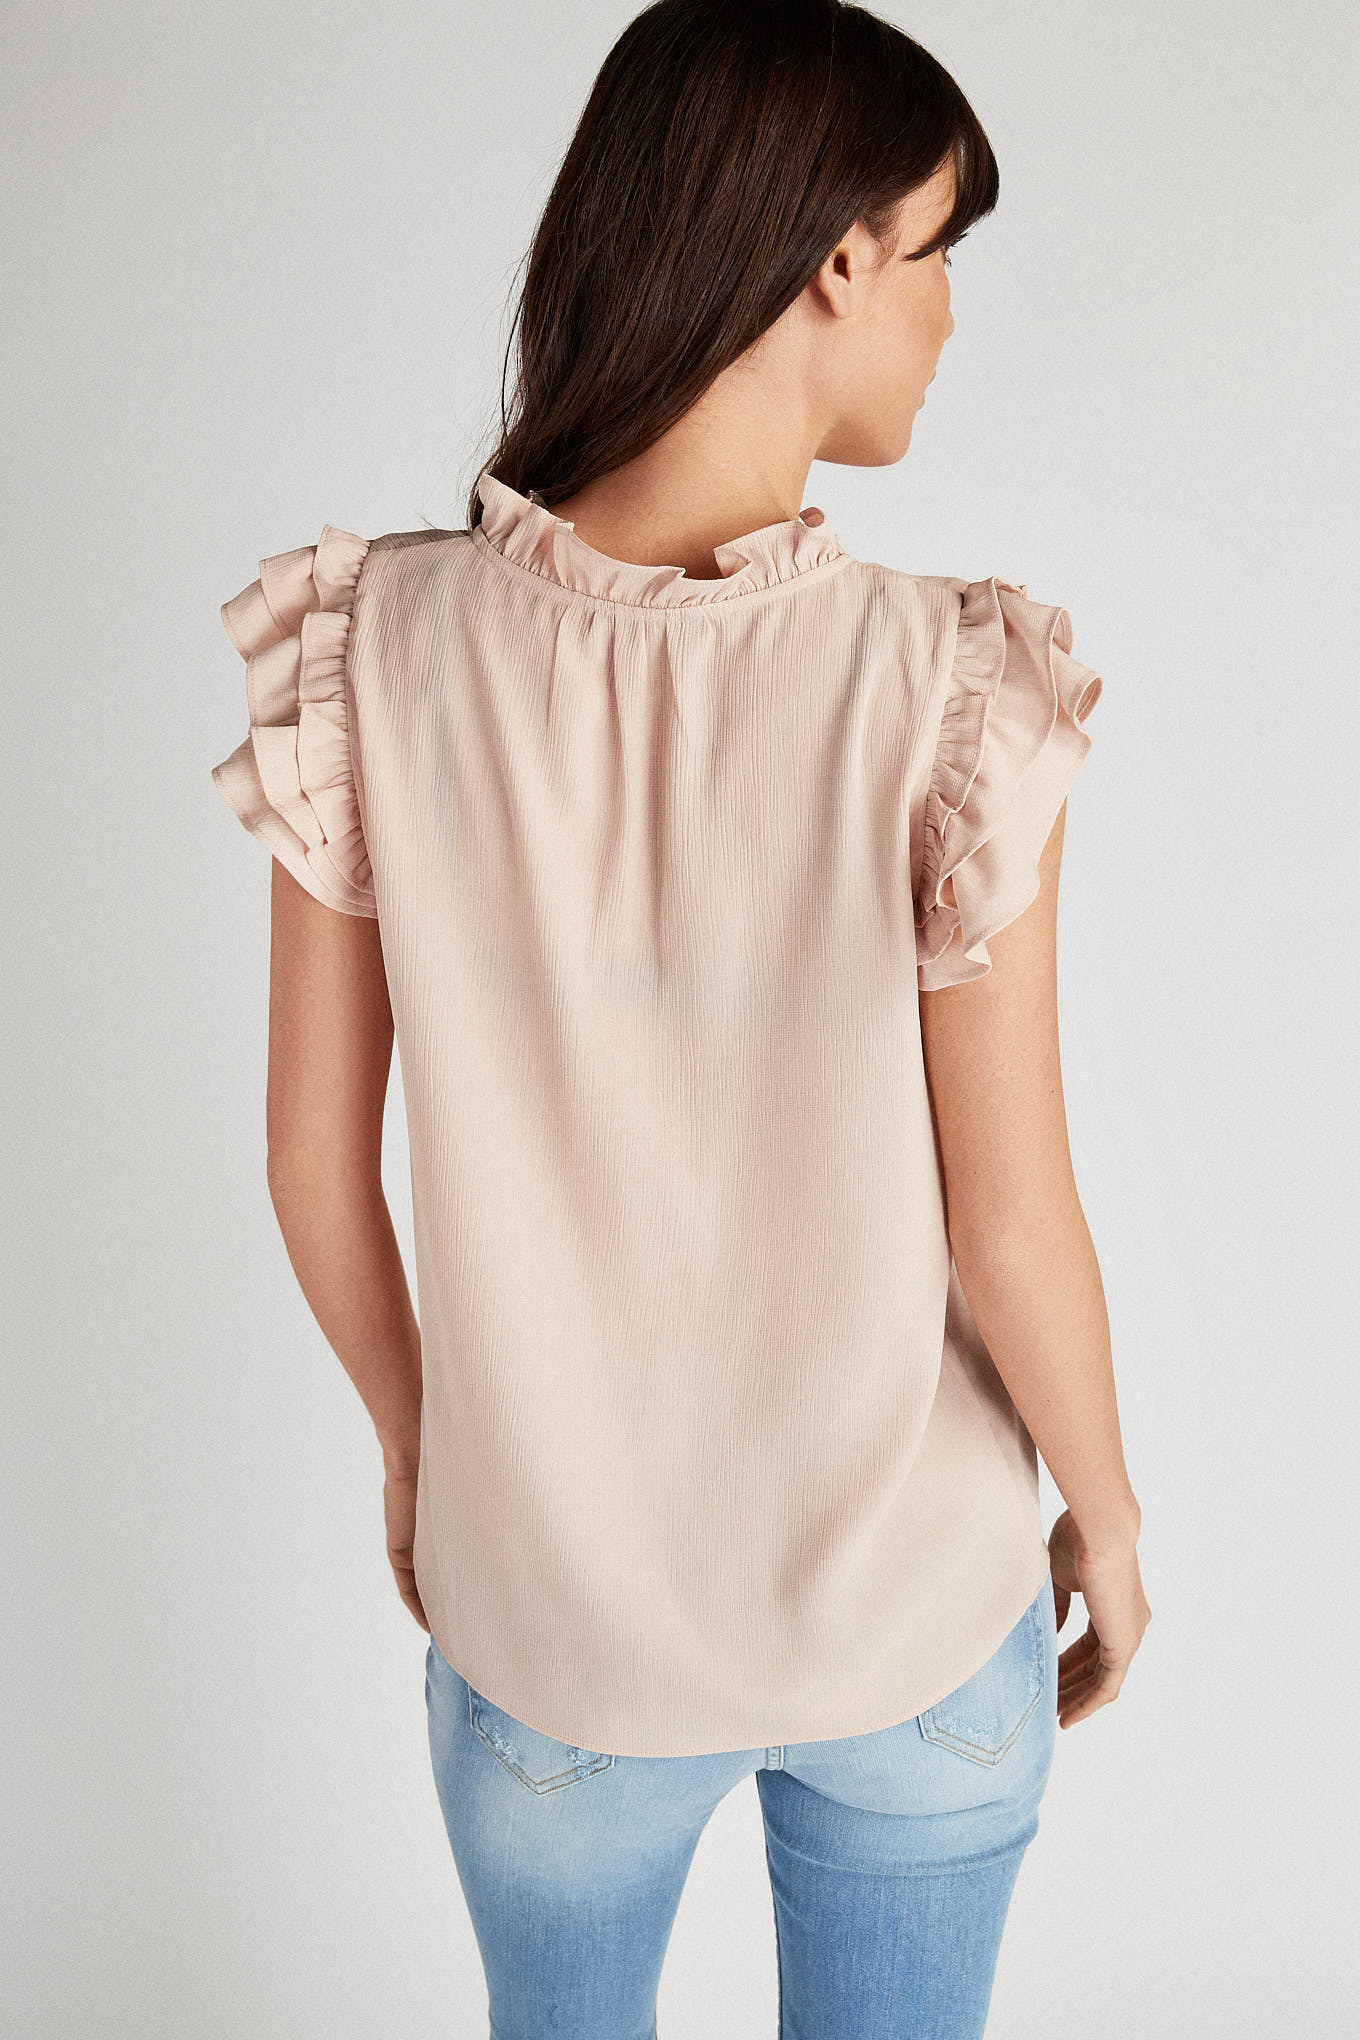 Blouse Pale Pink Fantasy Woman